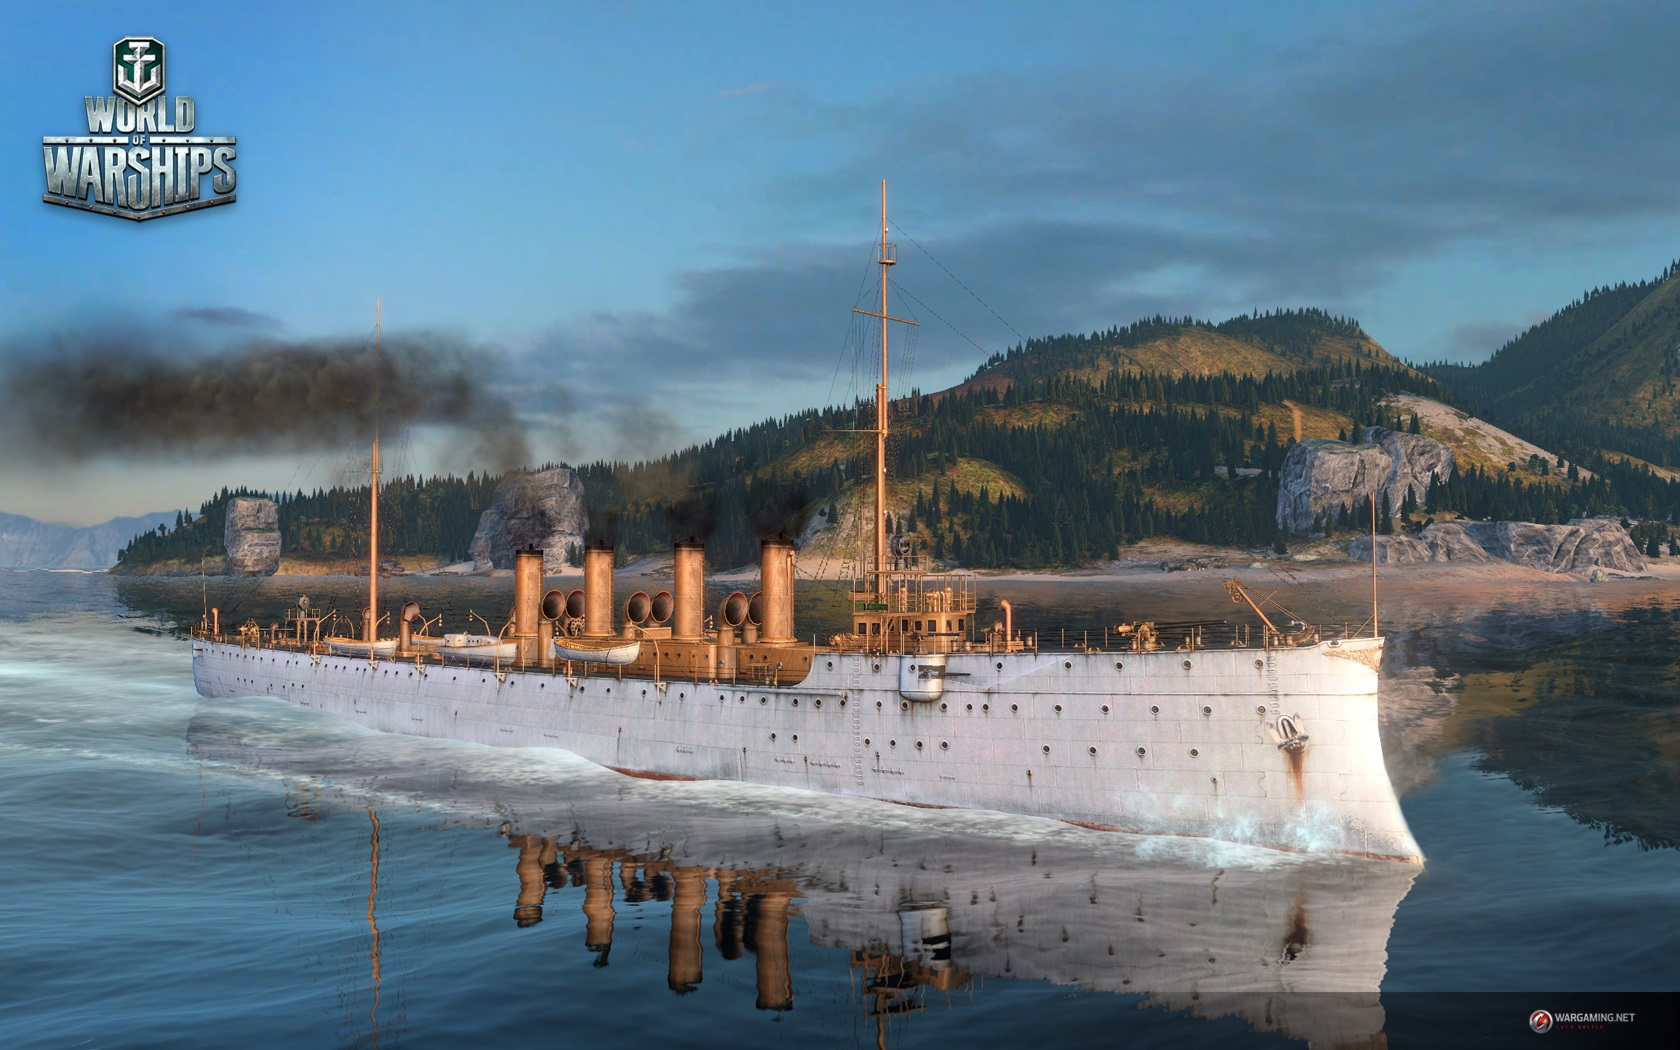 For World of Warships, realism is a guide not a goal